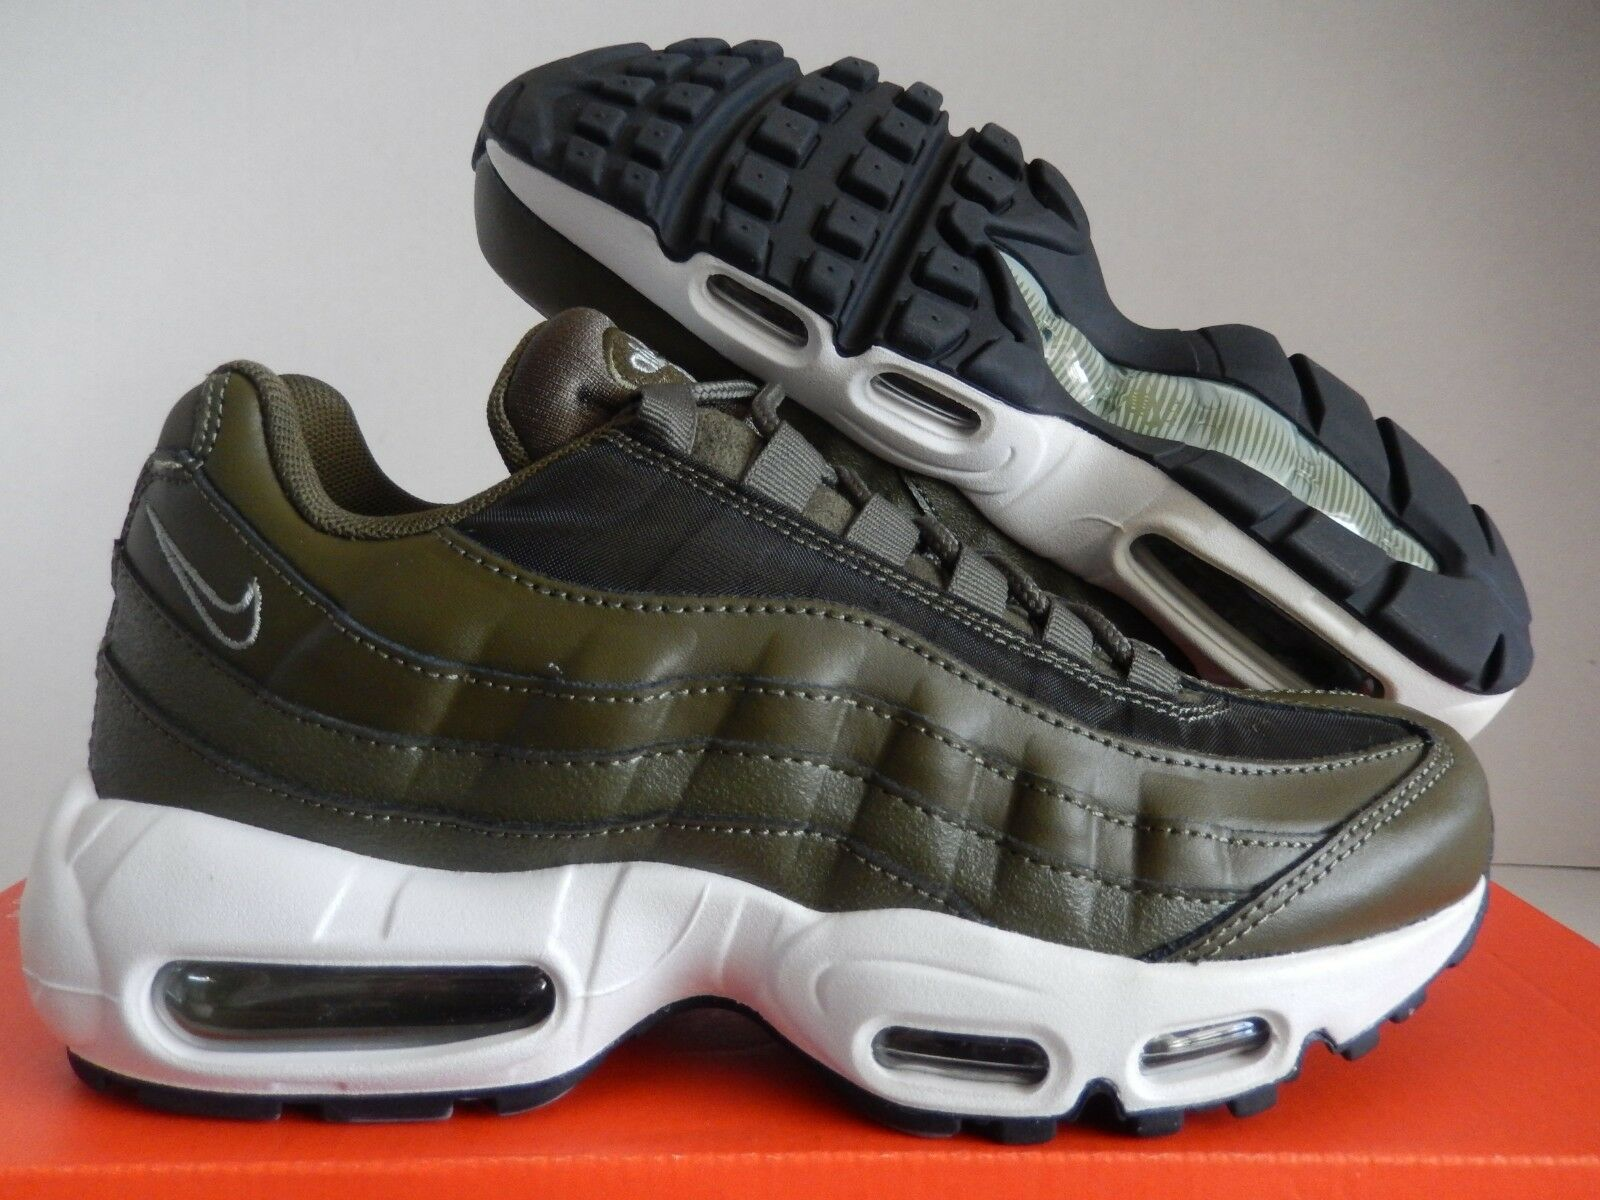 WMNS NIKE AIR MAX 95 SEQUOIA GREEN-BLACK-WHITE SZ 7 [307960-304]